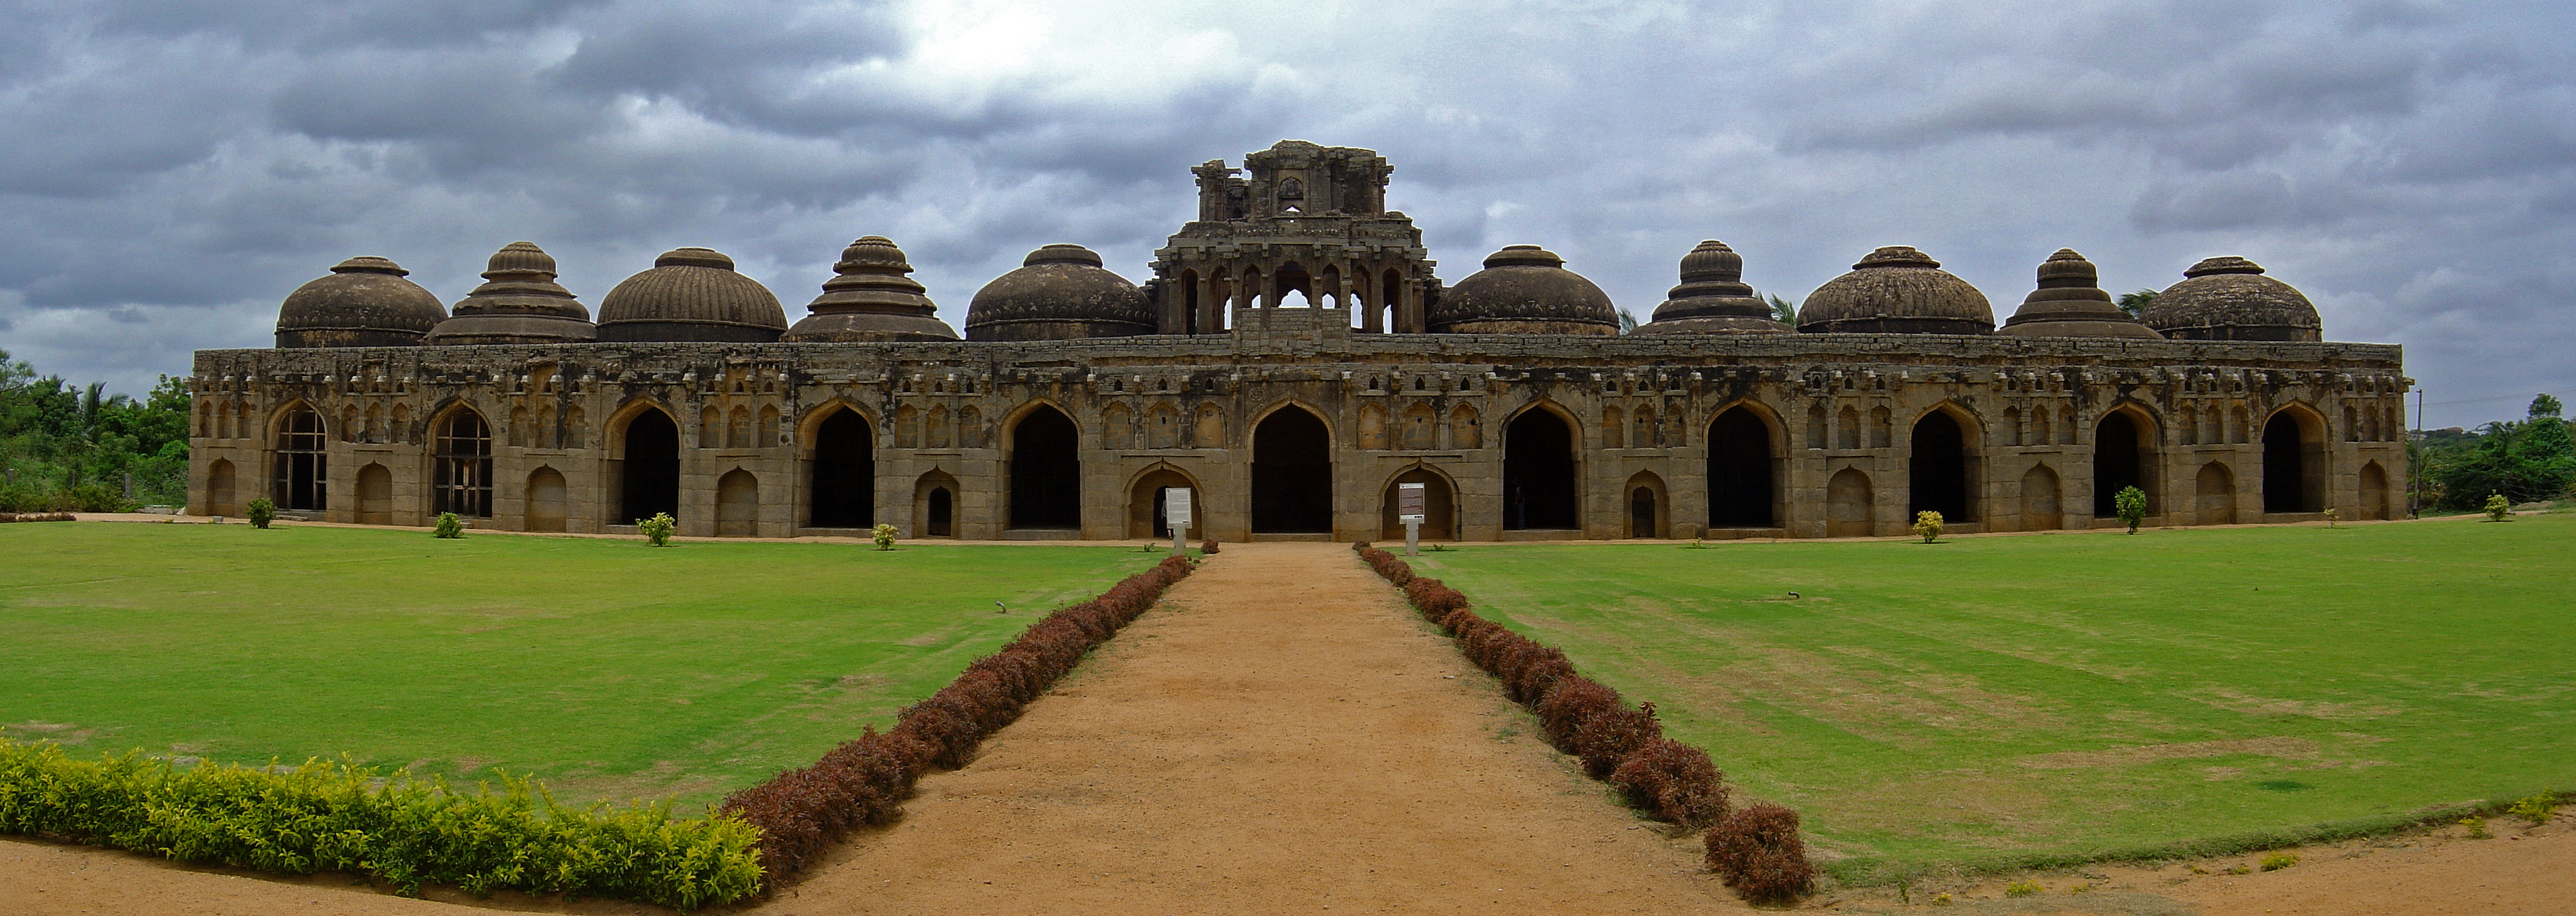 Elephant_stables_Hampi_Karnataka_India